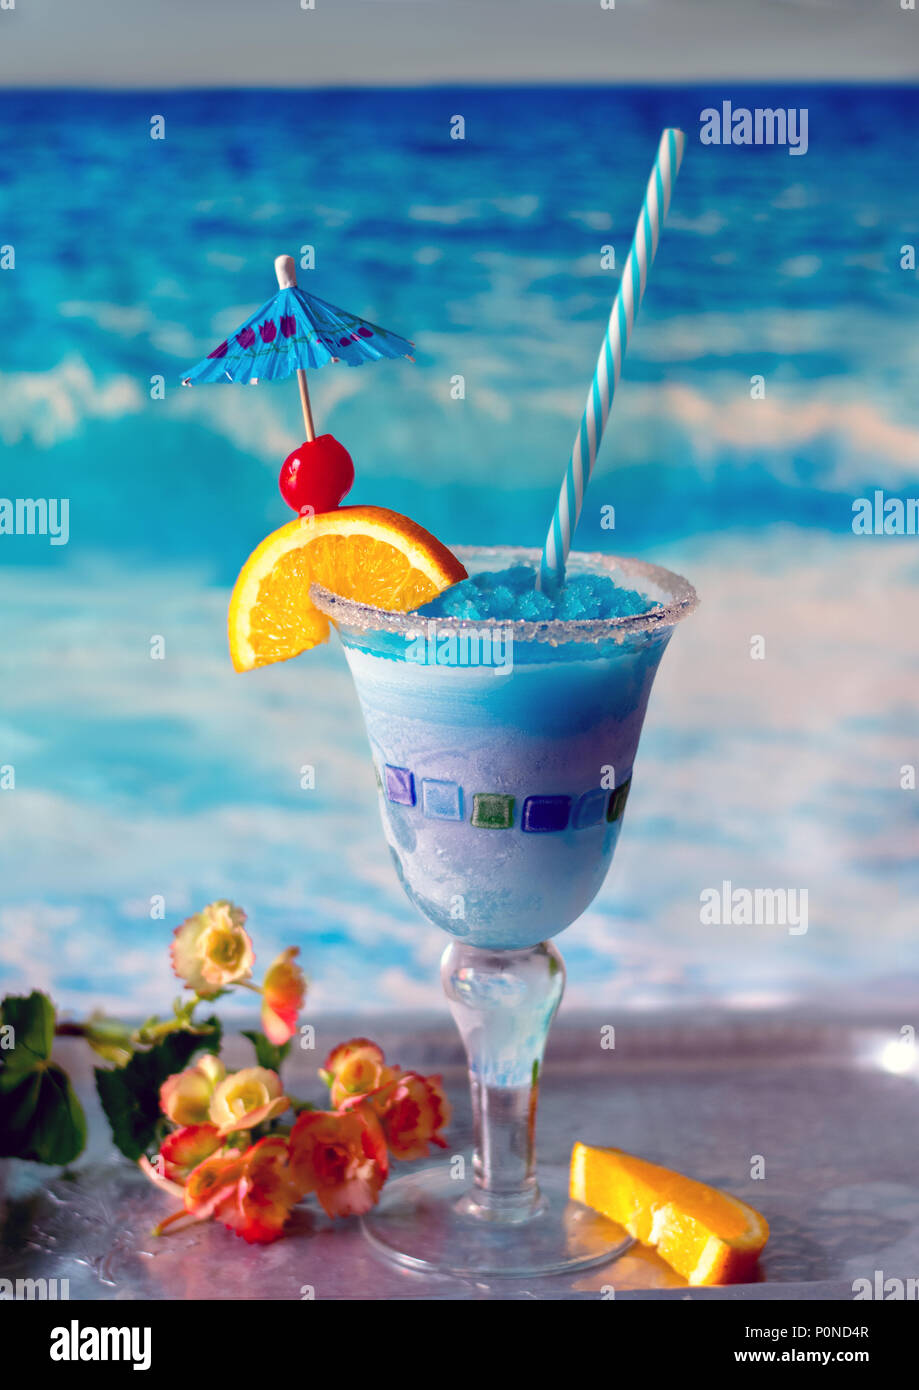 delicious frozen drink called a blue whale, with ice, lemonade, citrus vodka and curacao blue - Stock Image